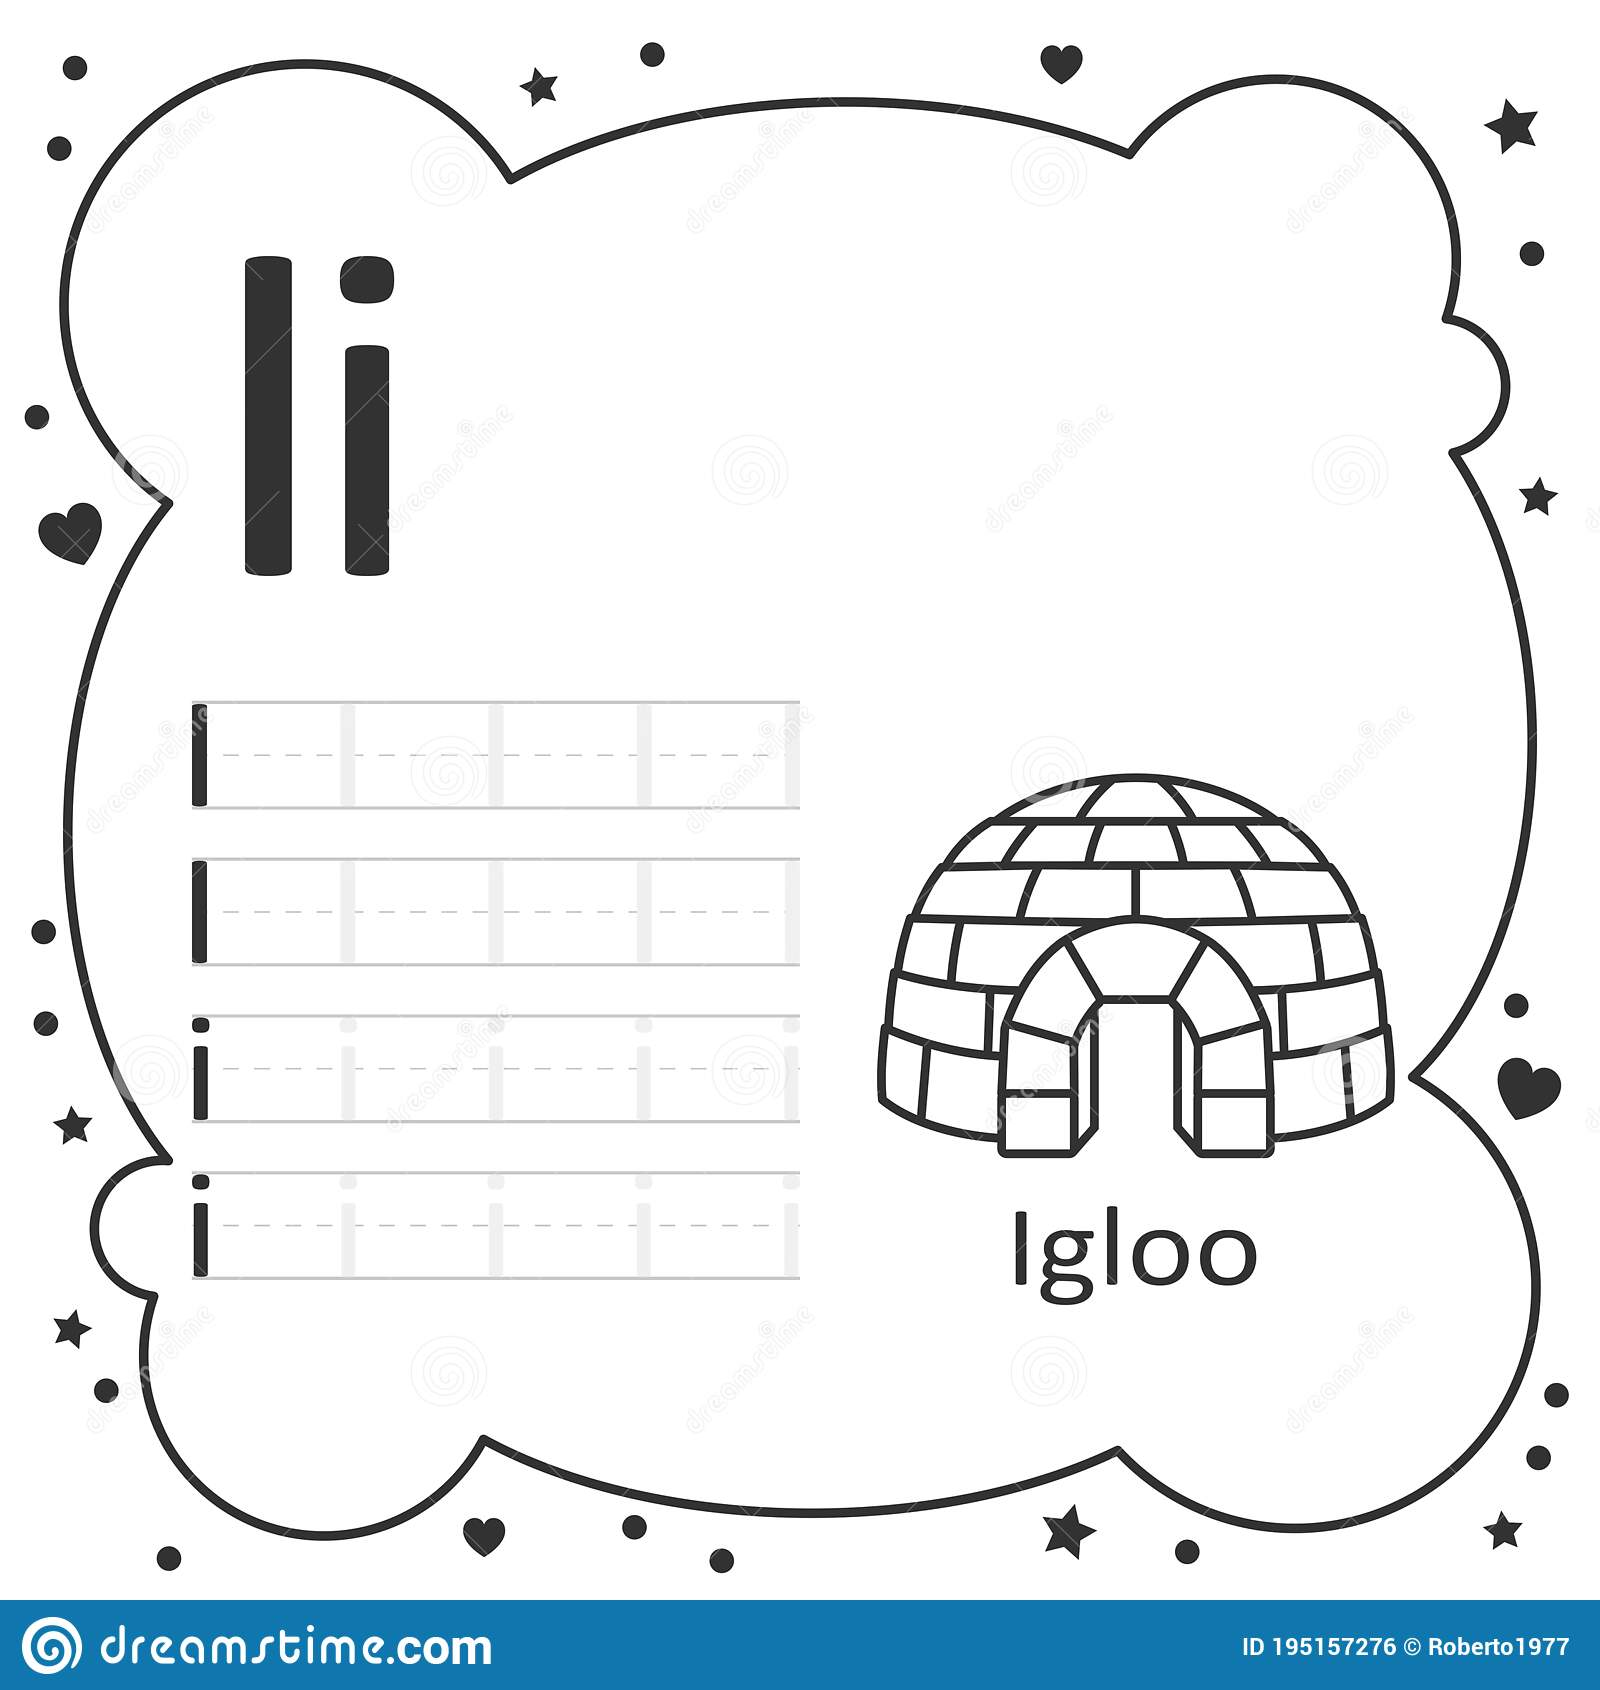 Coloring Alphabet Tracing Letters Igloo Stock Illustration